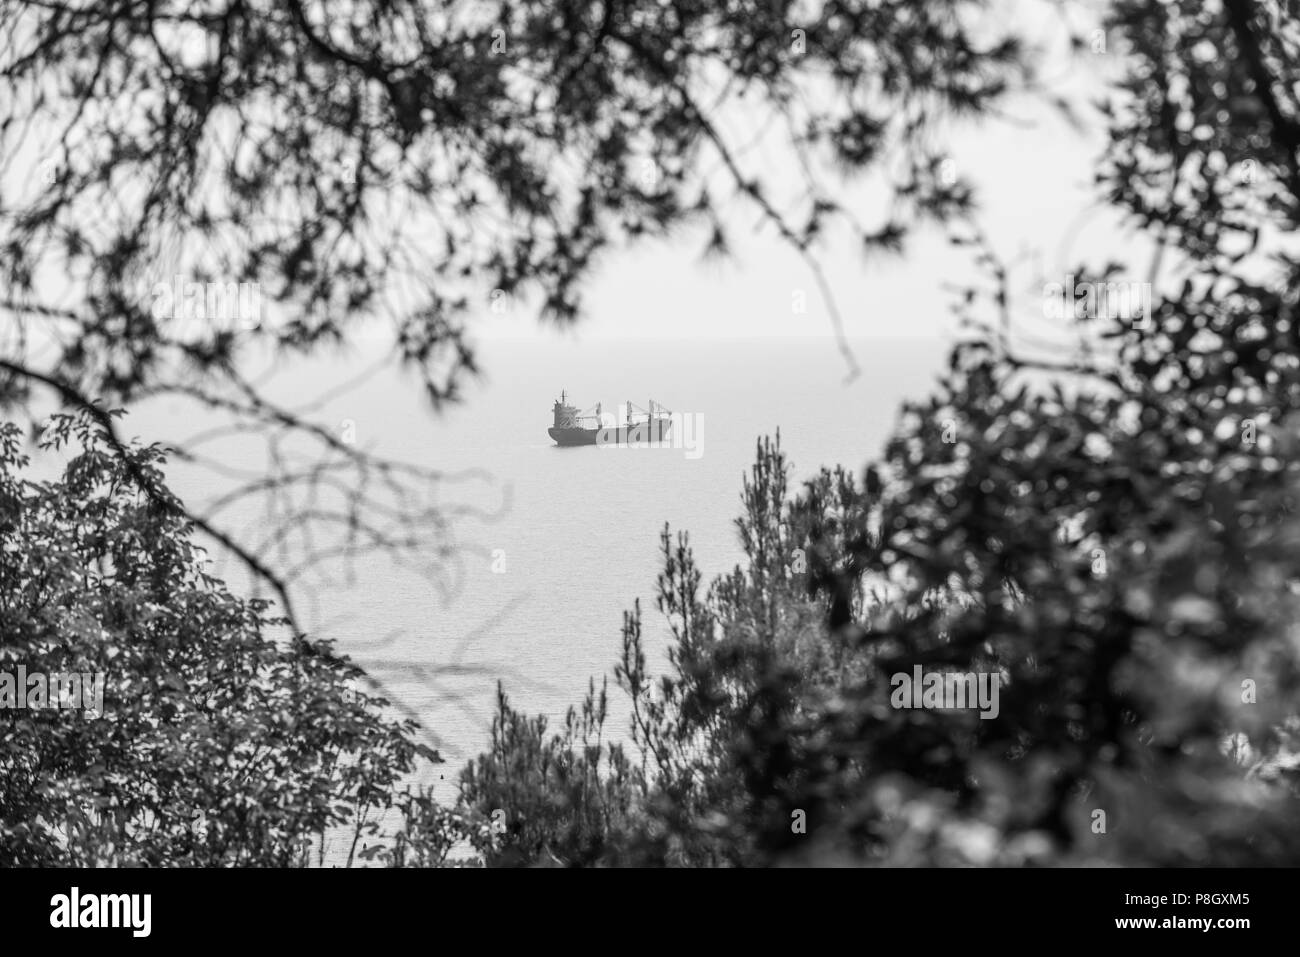 Cargo Ships Black And White Stock Photos Images Alamy Craft Wiring Diagram Anchored Around Trieste Italy Image